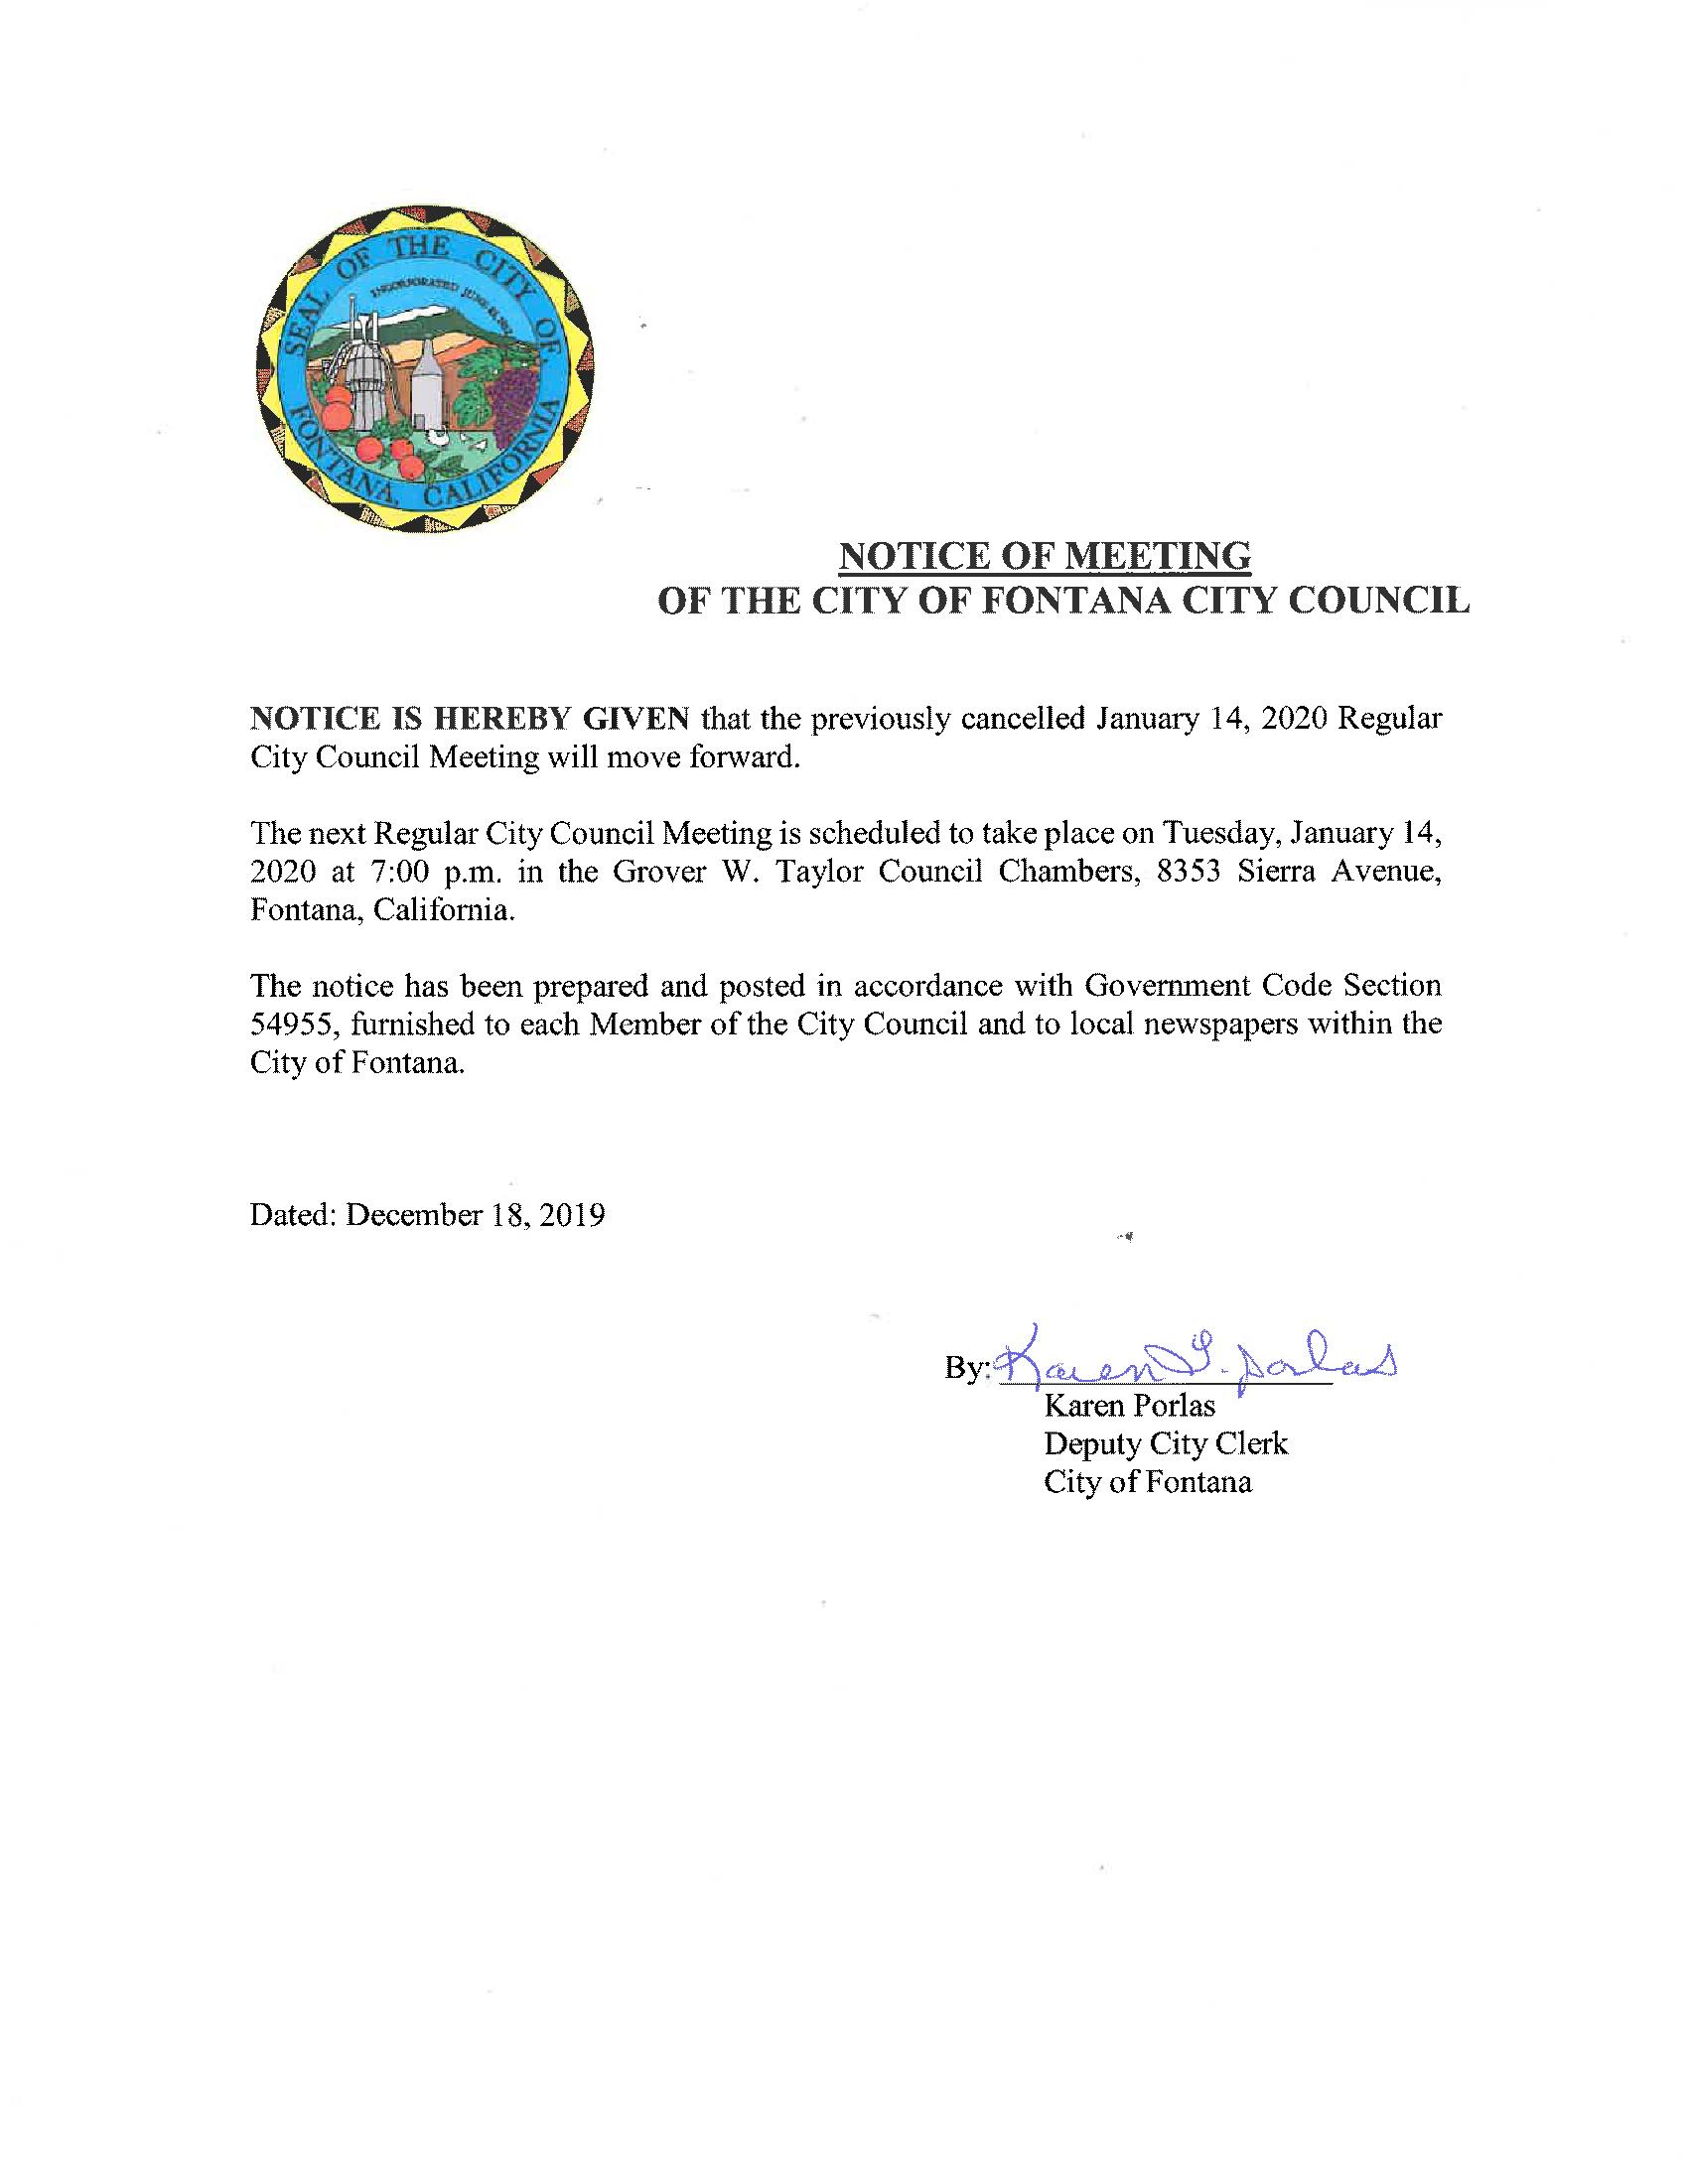 City Council Meeting January 14